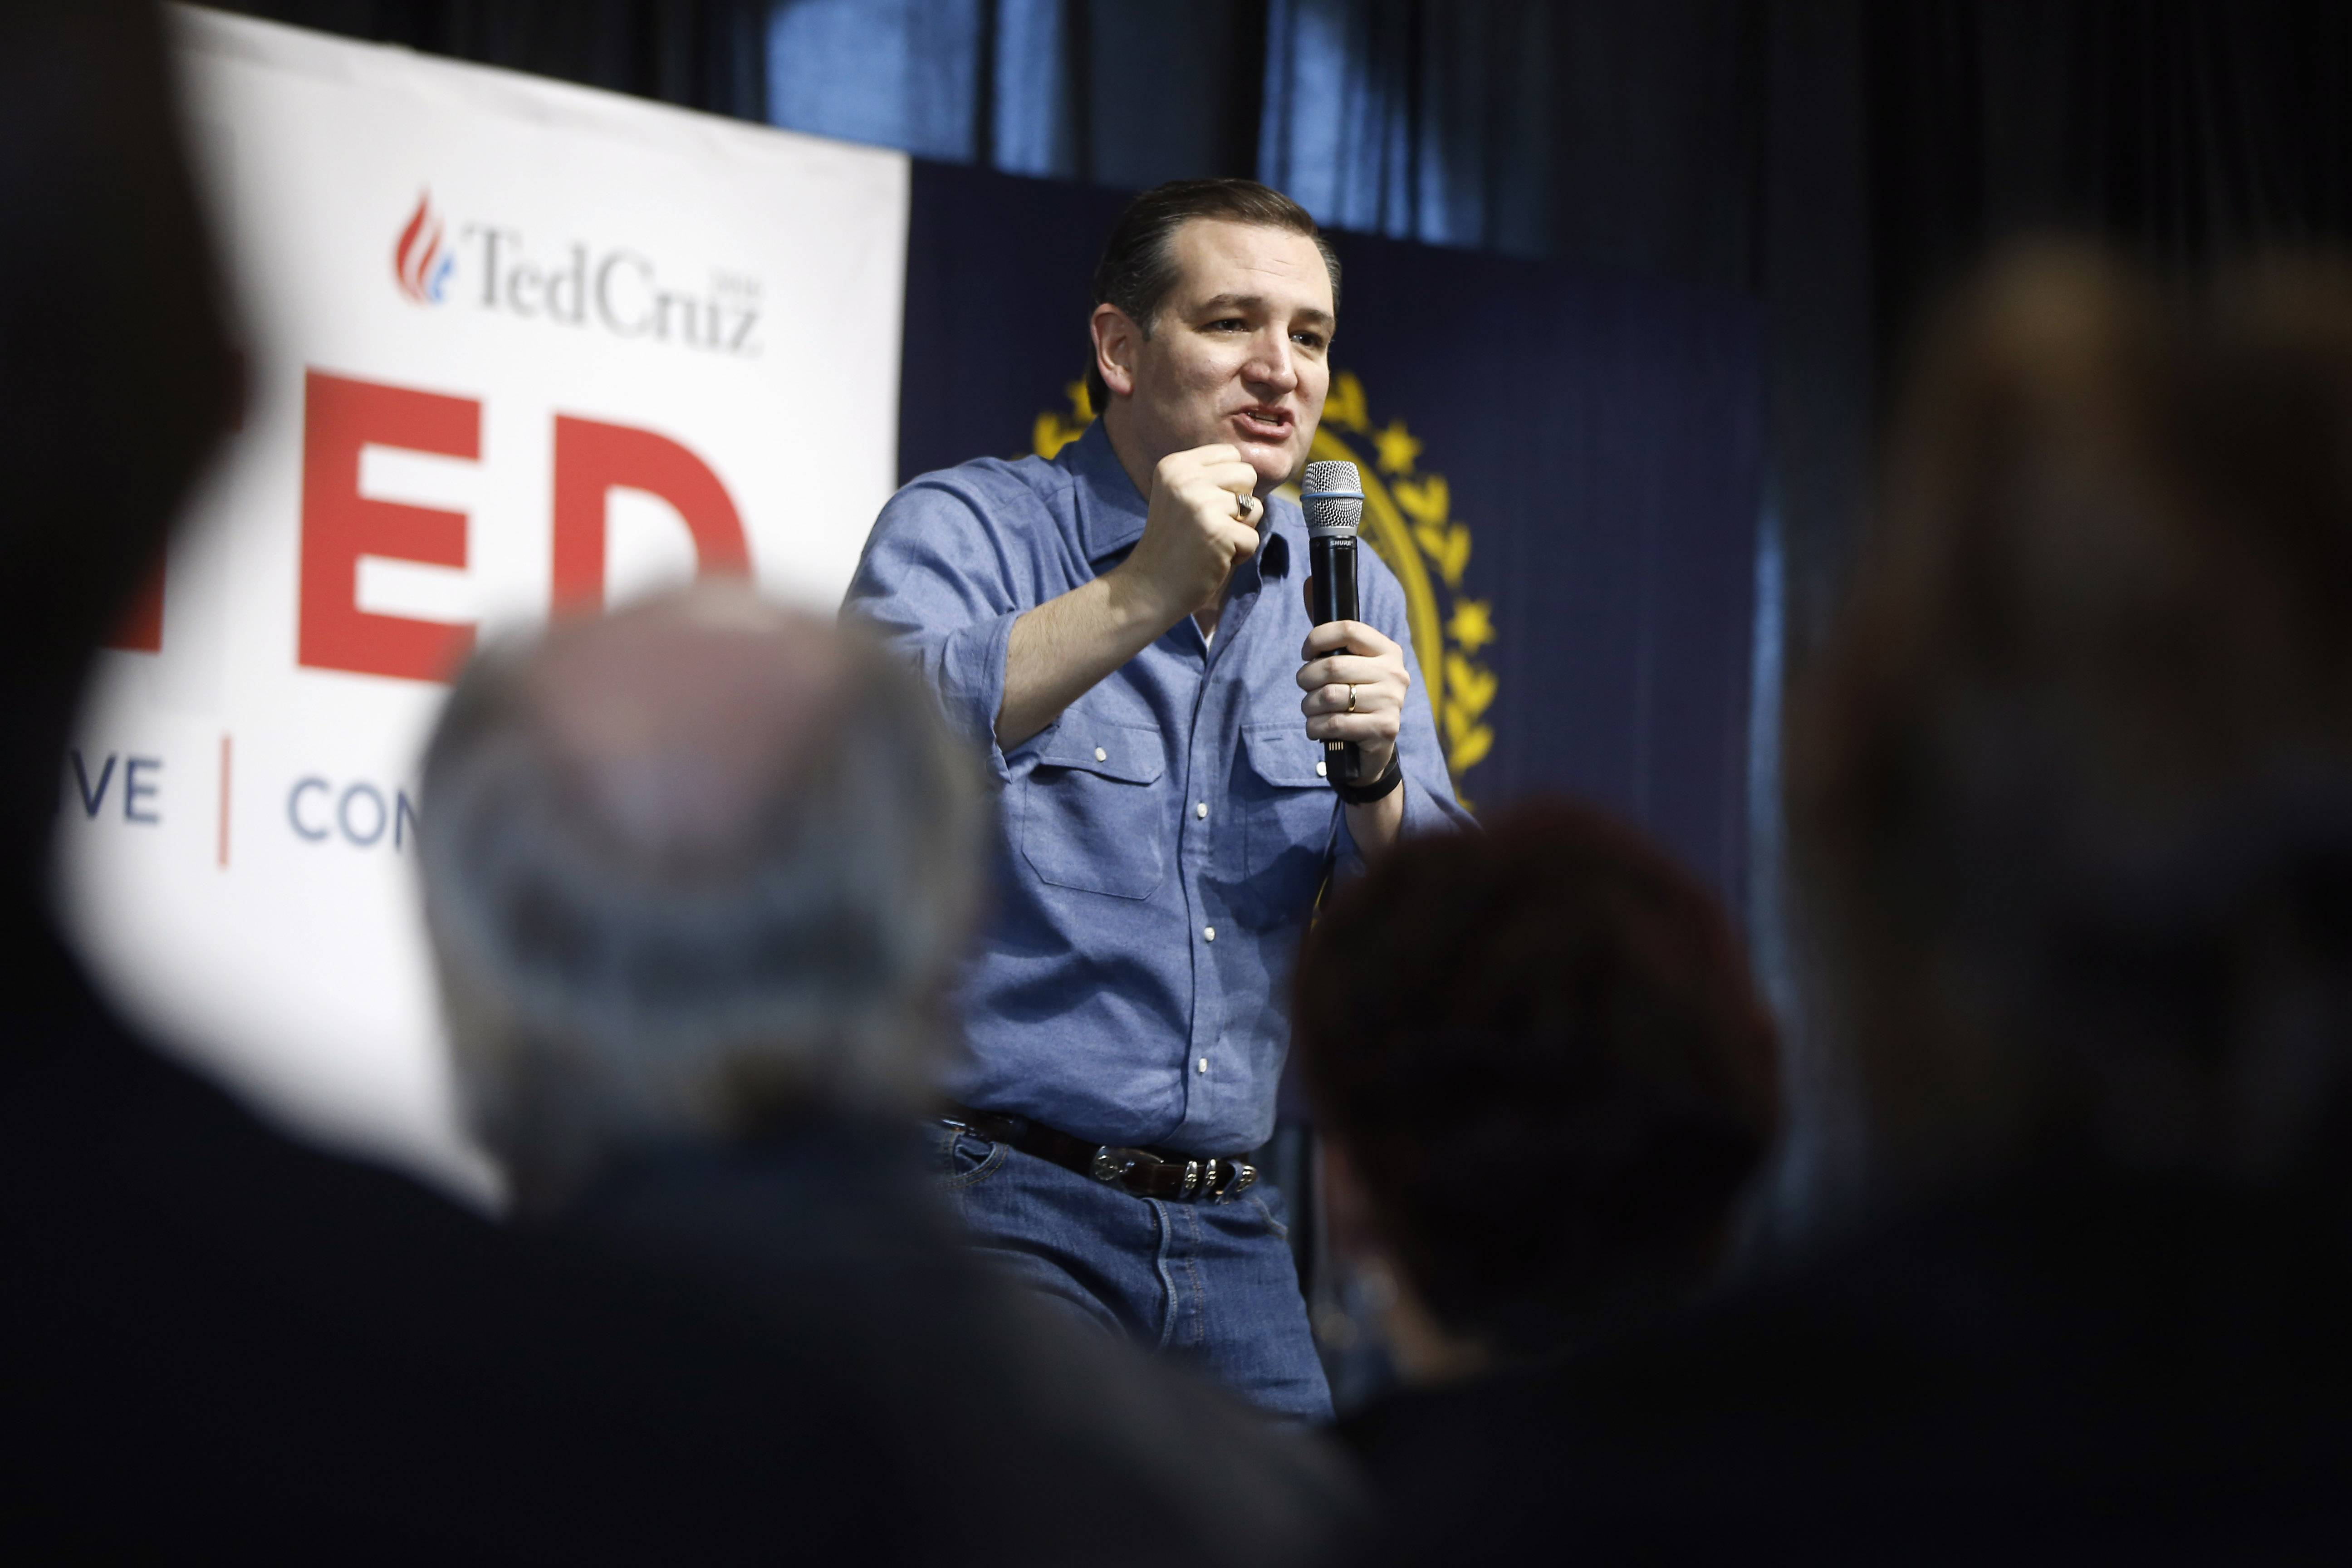 Texas Sen. Ted Cruz is scheduled to headline a suburban event days before Illinois' March 15 primary.